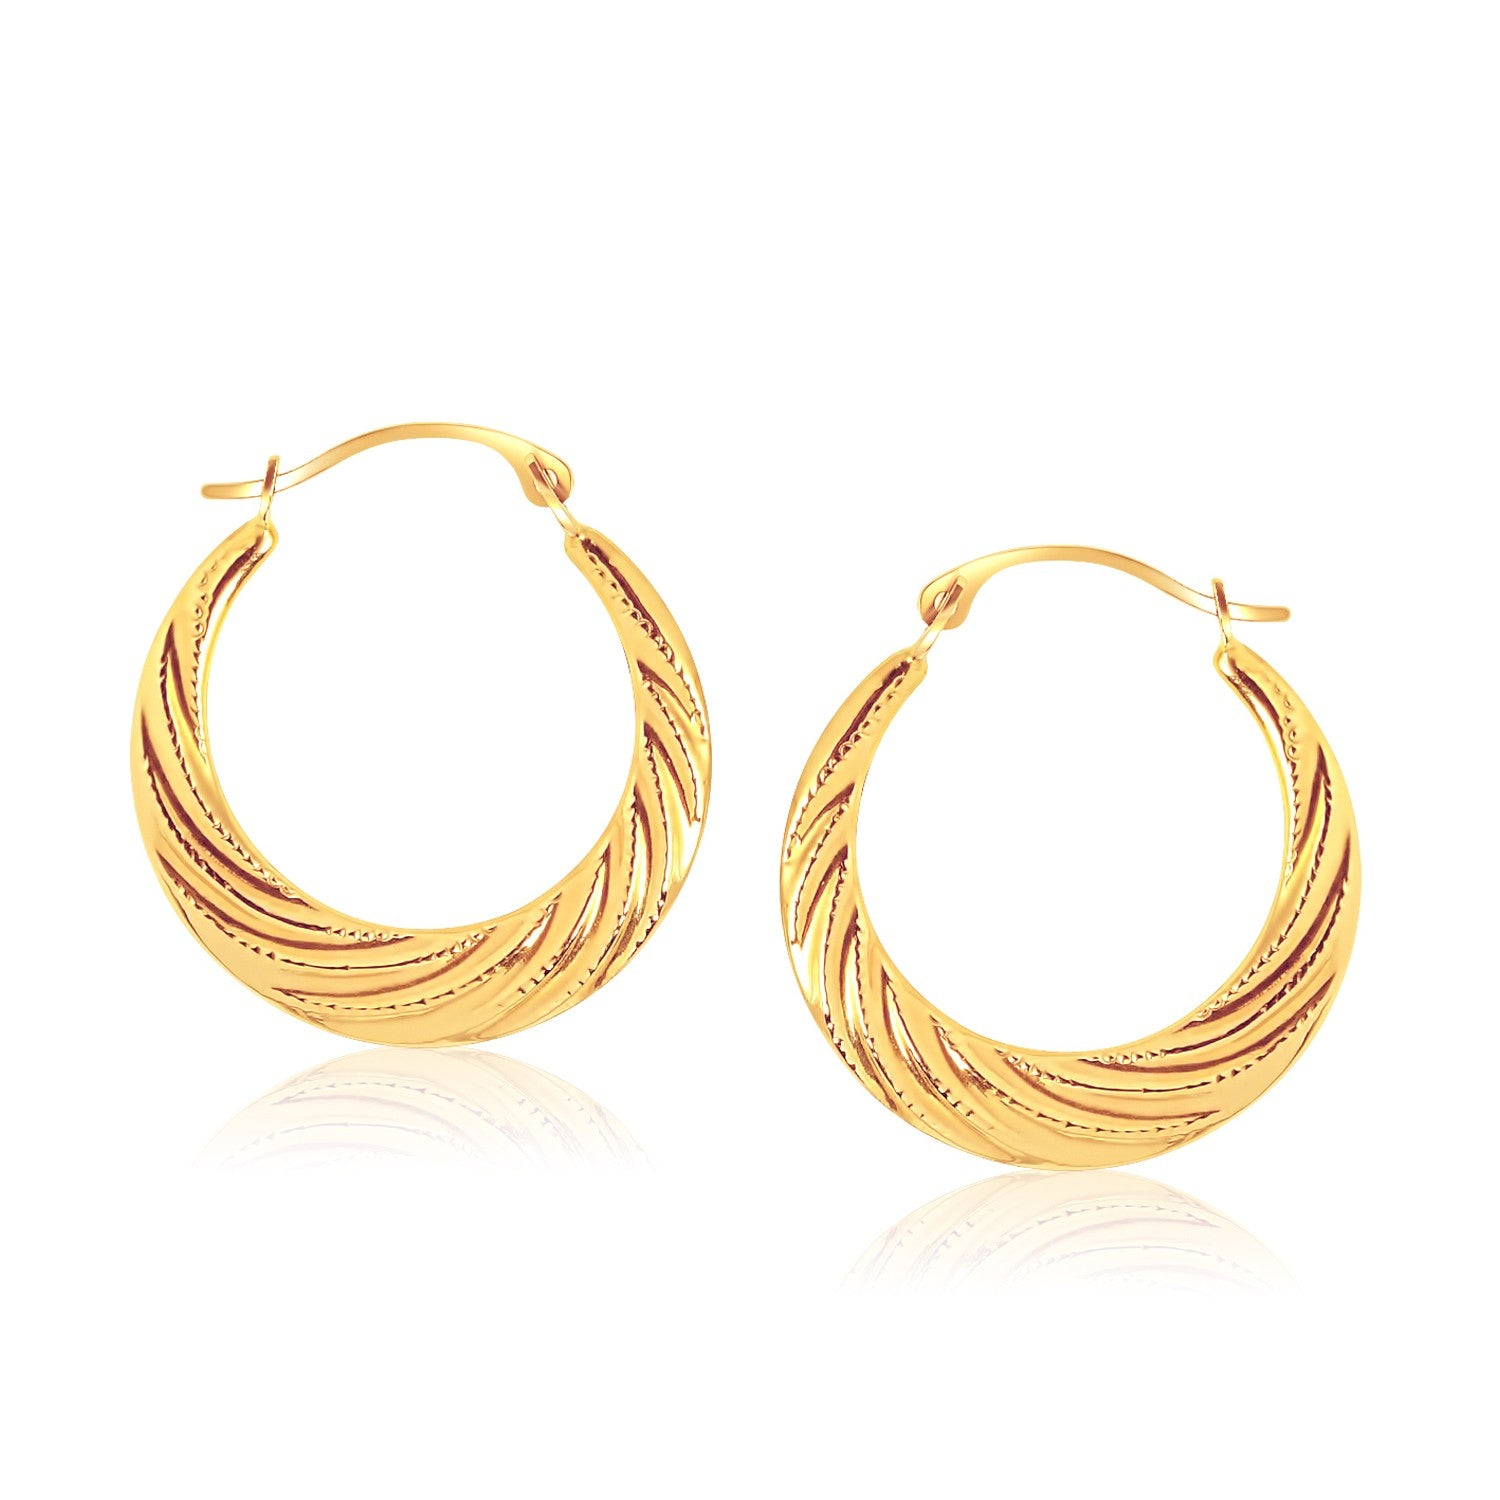 14K Yellow Gold Textured Graduated Twist Hoop Earrings